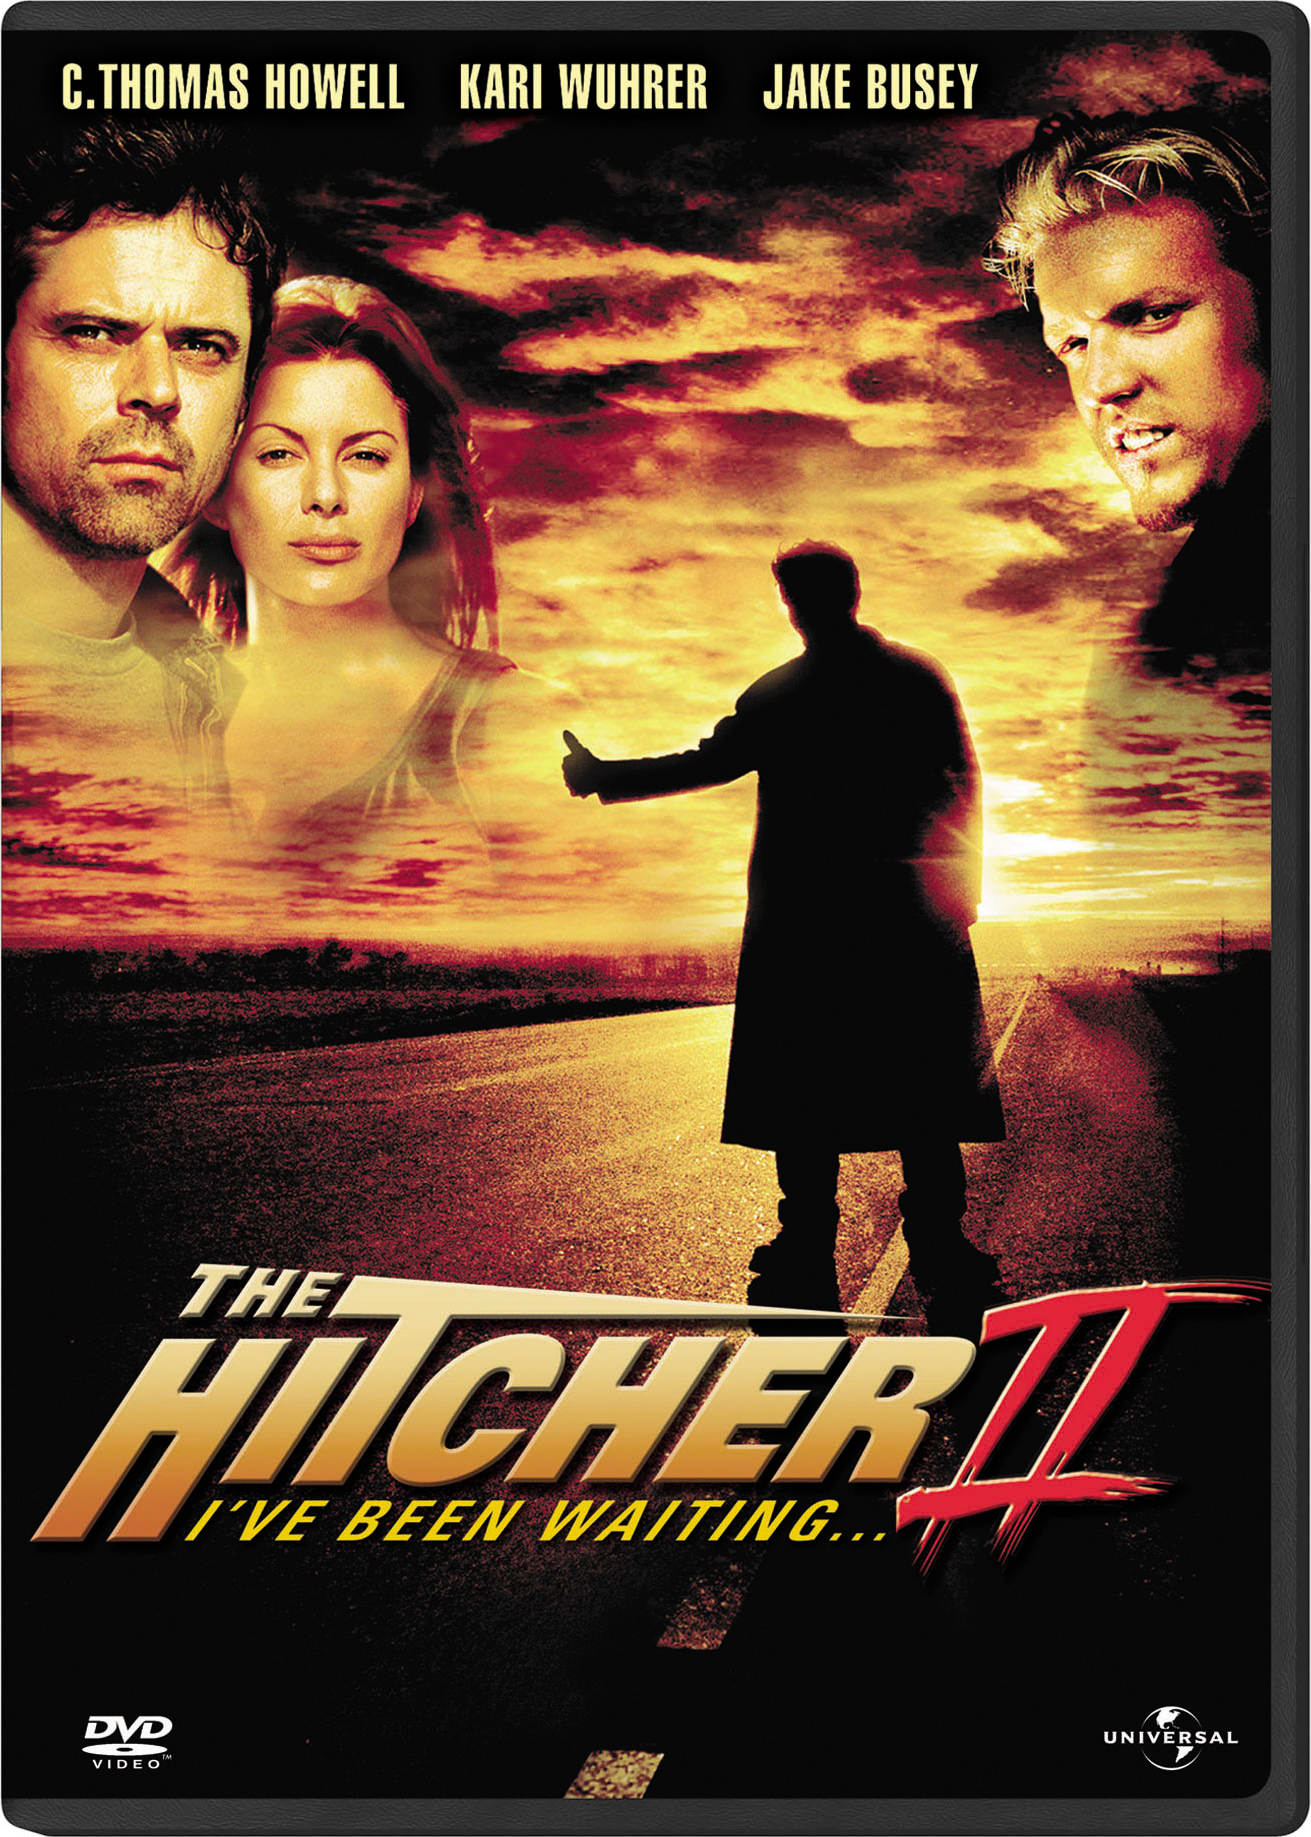 The Hitcher 2 - I've Been Waiting [DVD]